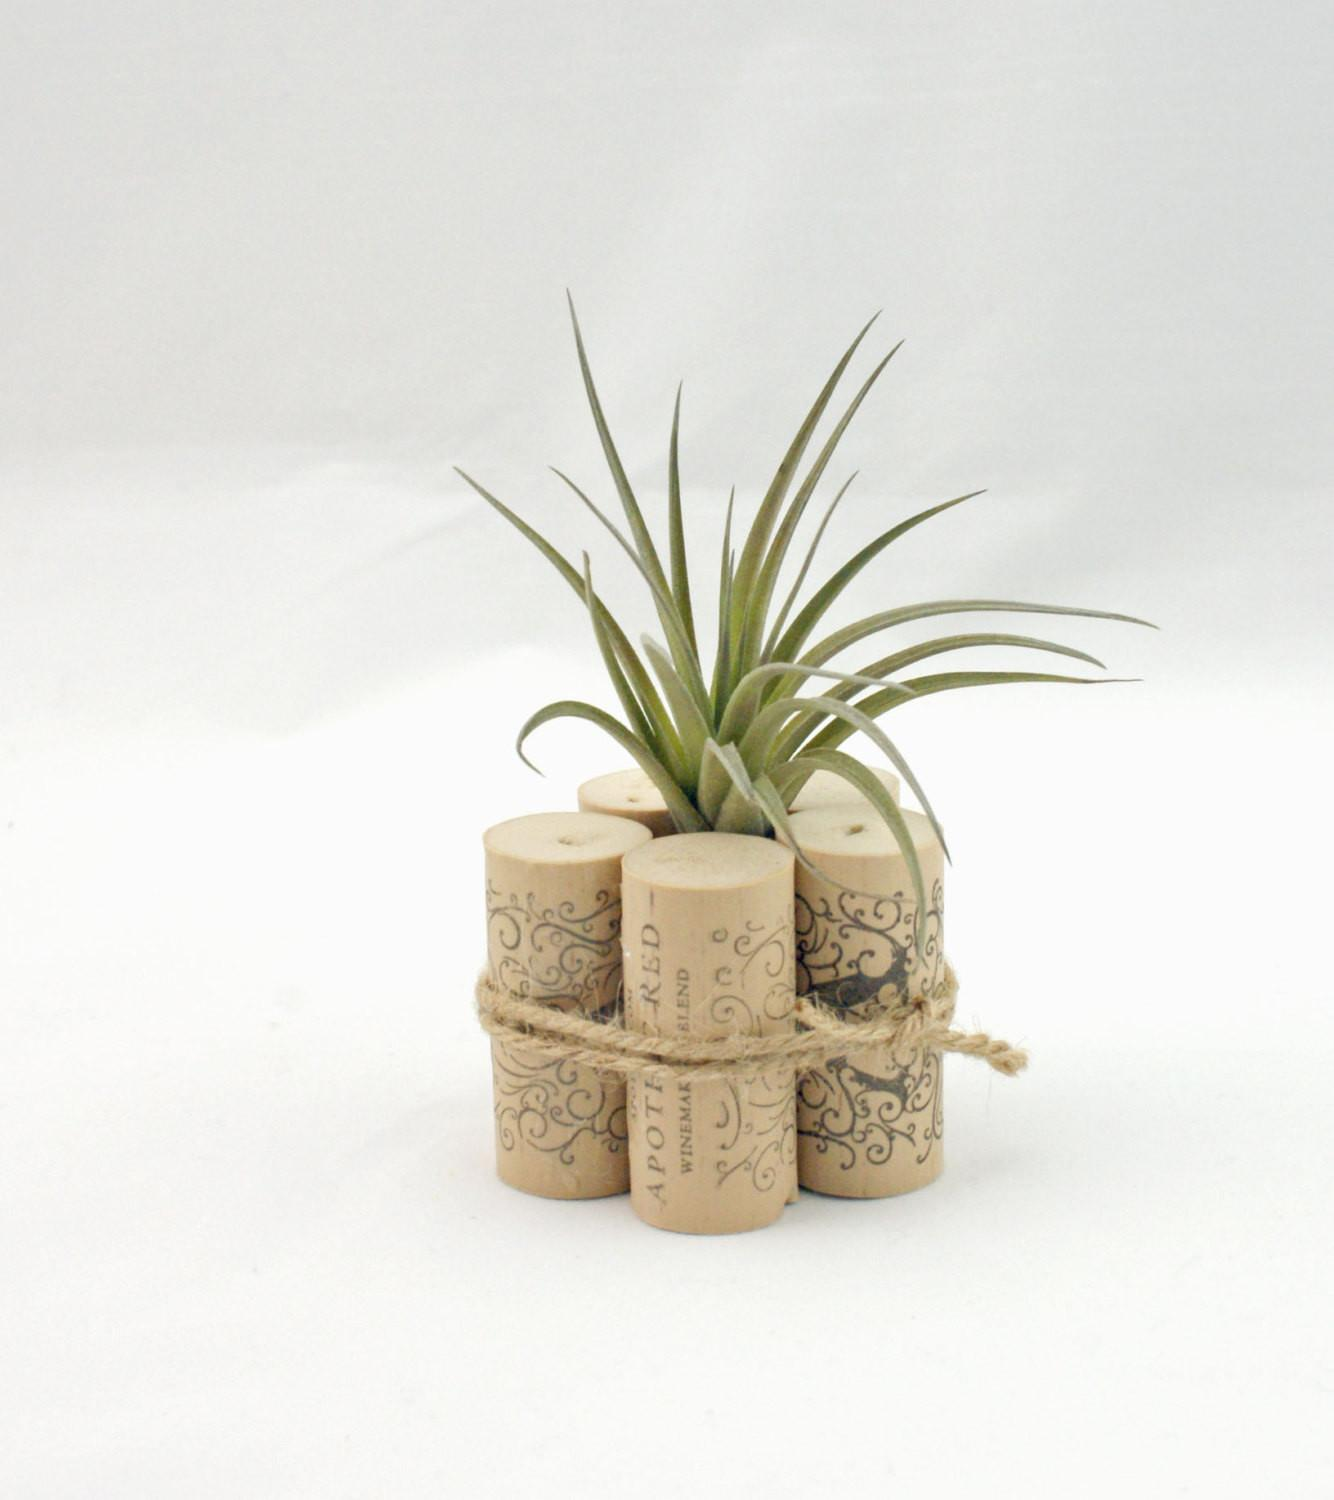 Air Plant Container Wine Cork Decor Rustic